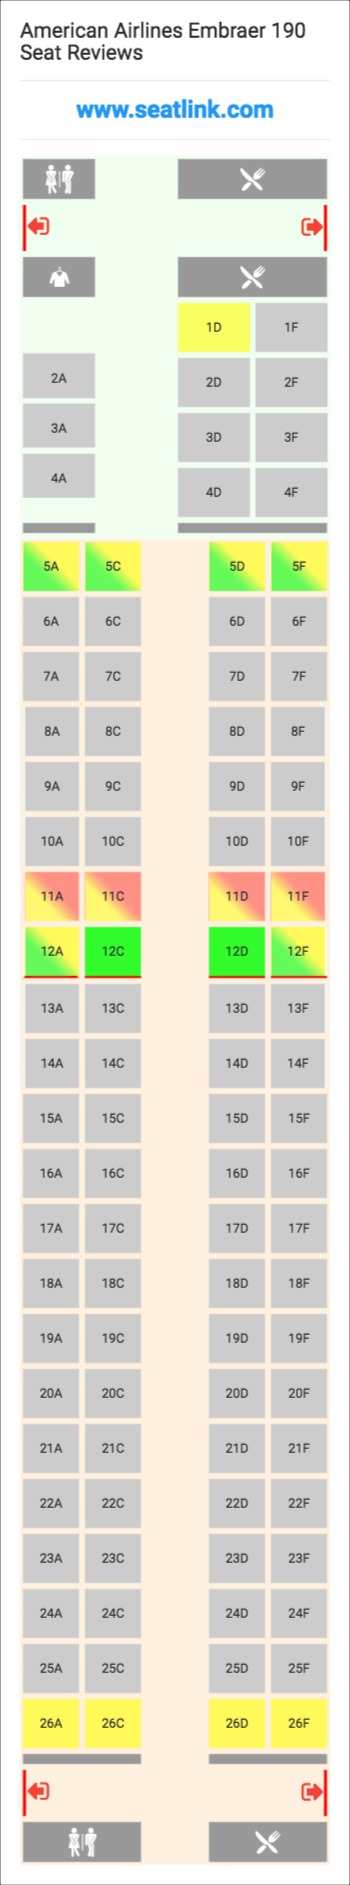 American Airlines Embraer 190 E90 Seat Map Airline Seating